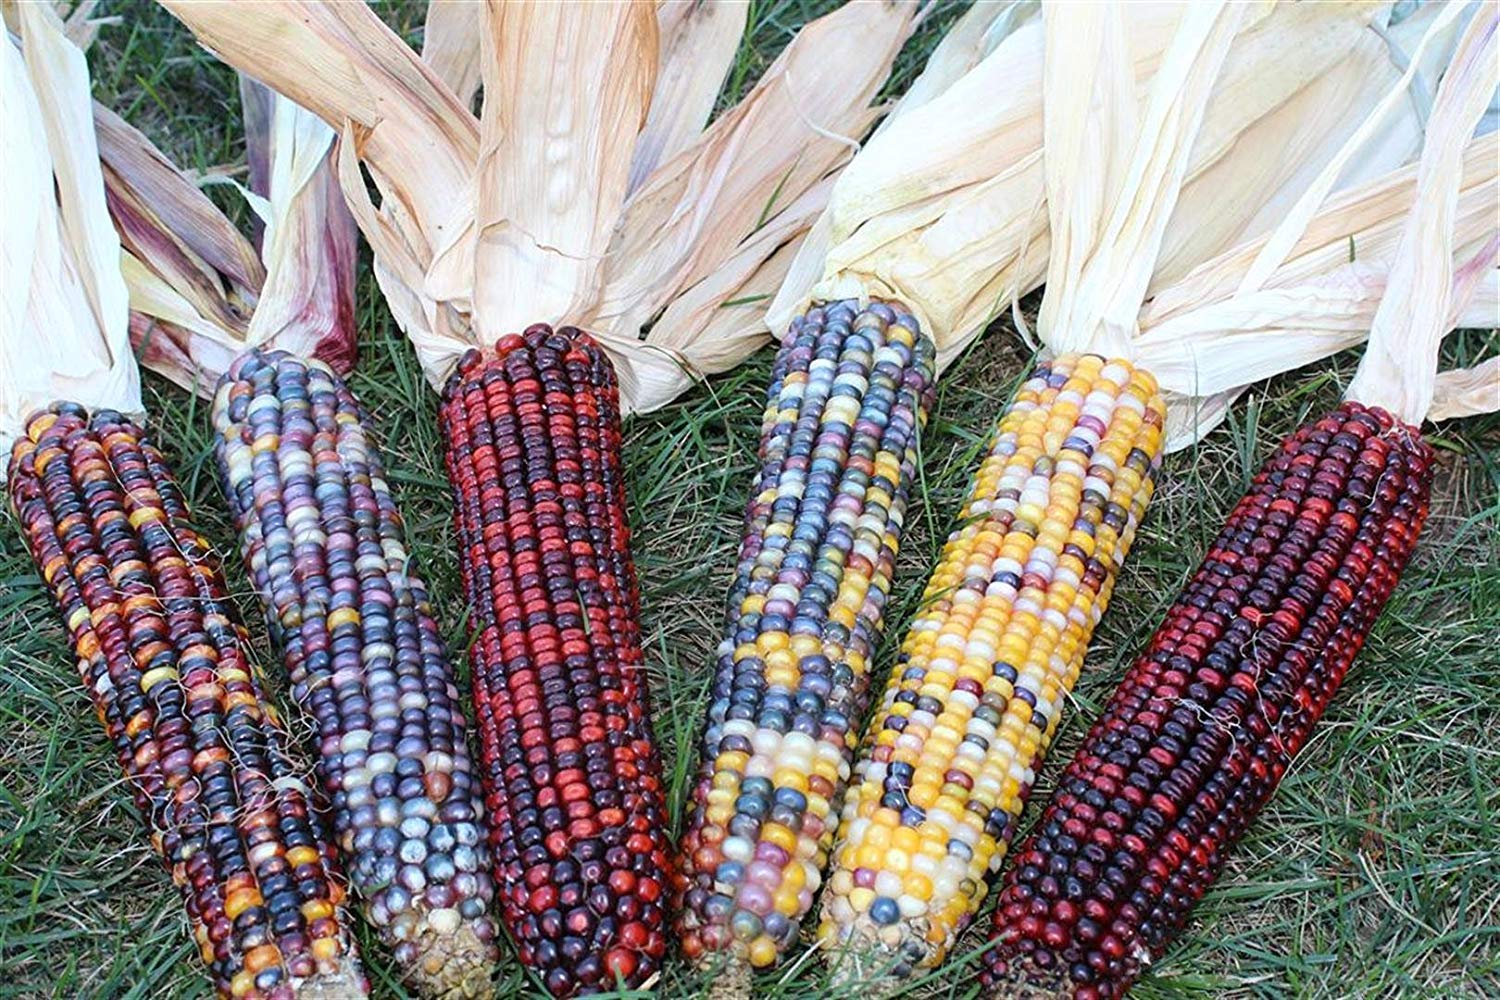 Decorative Indian Corn - 5 to 6 Ears with Husk - Each Ear 6 to 10 inches Long - Ornamental by Noteboom Farms LLC (Image #3)